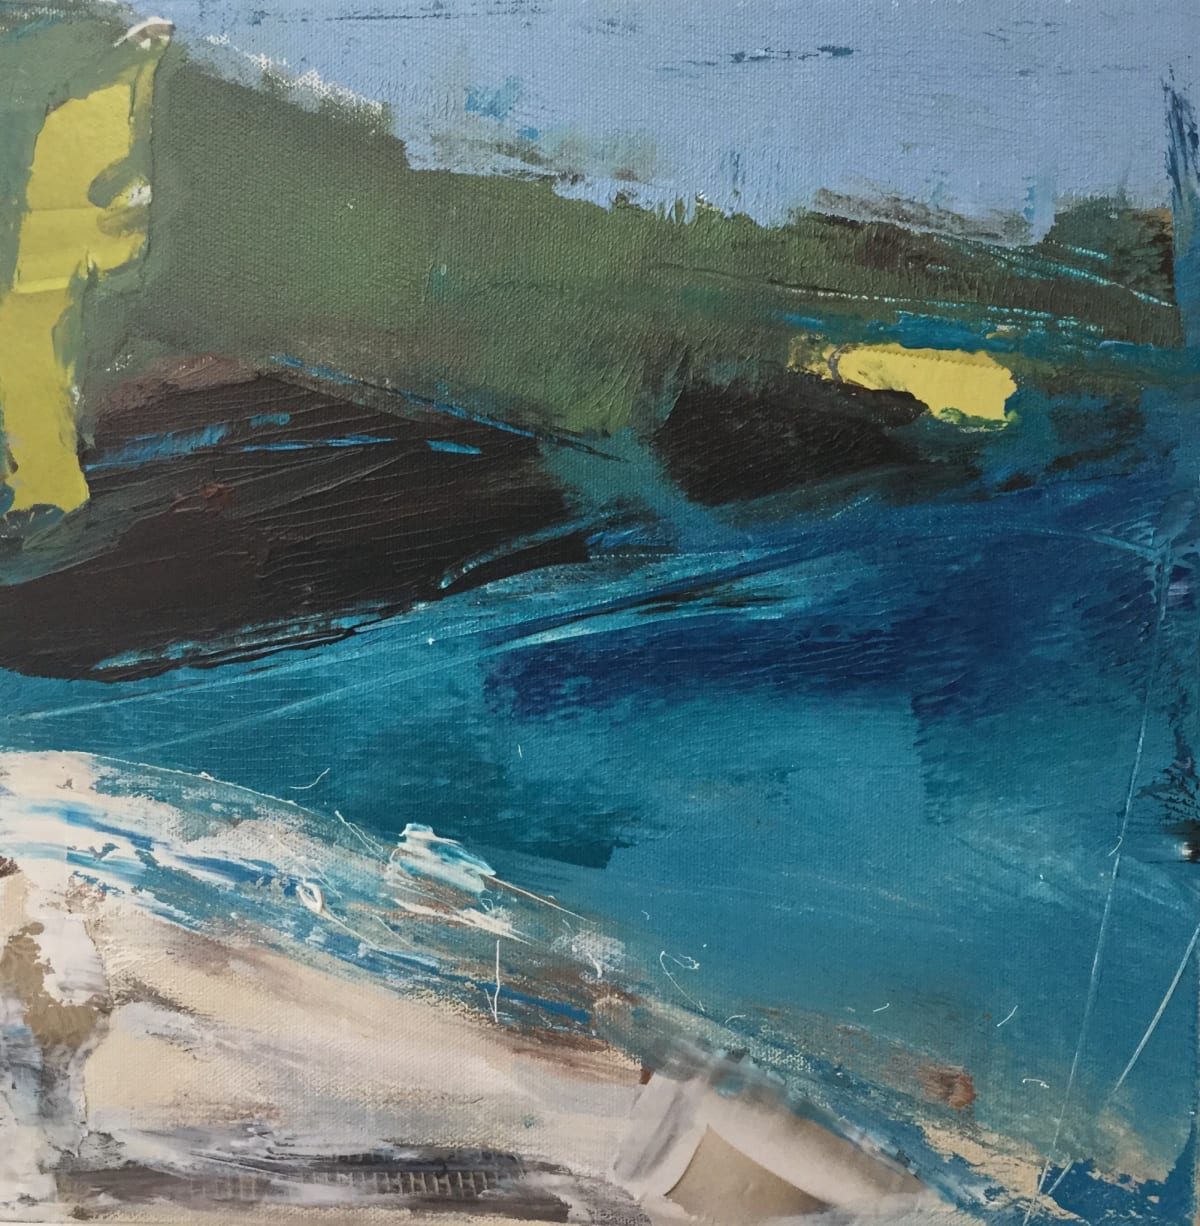 Catherine Warren, St. Ives, Blue, 2020